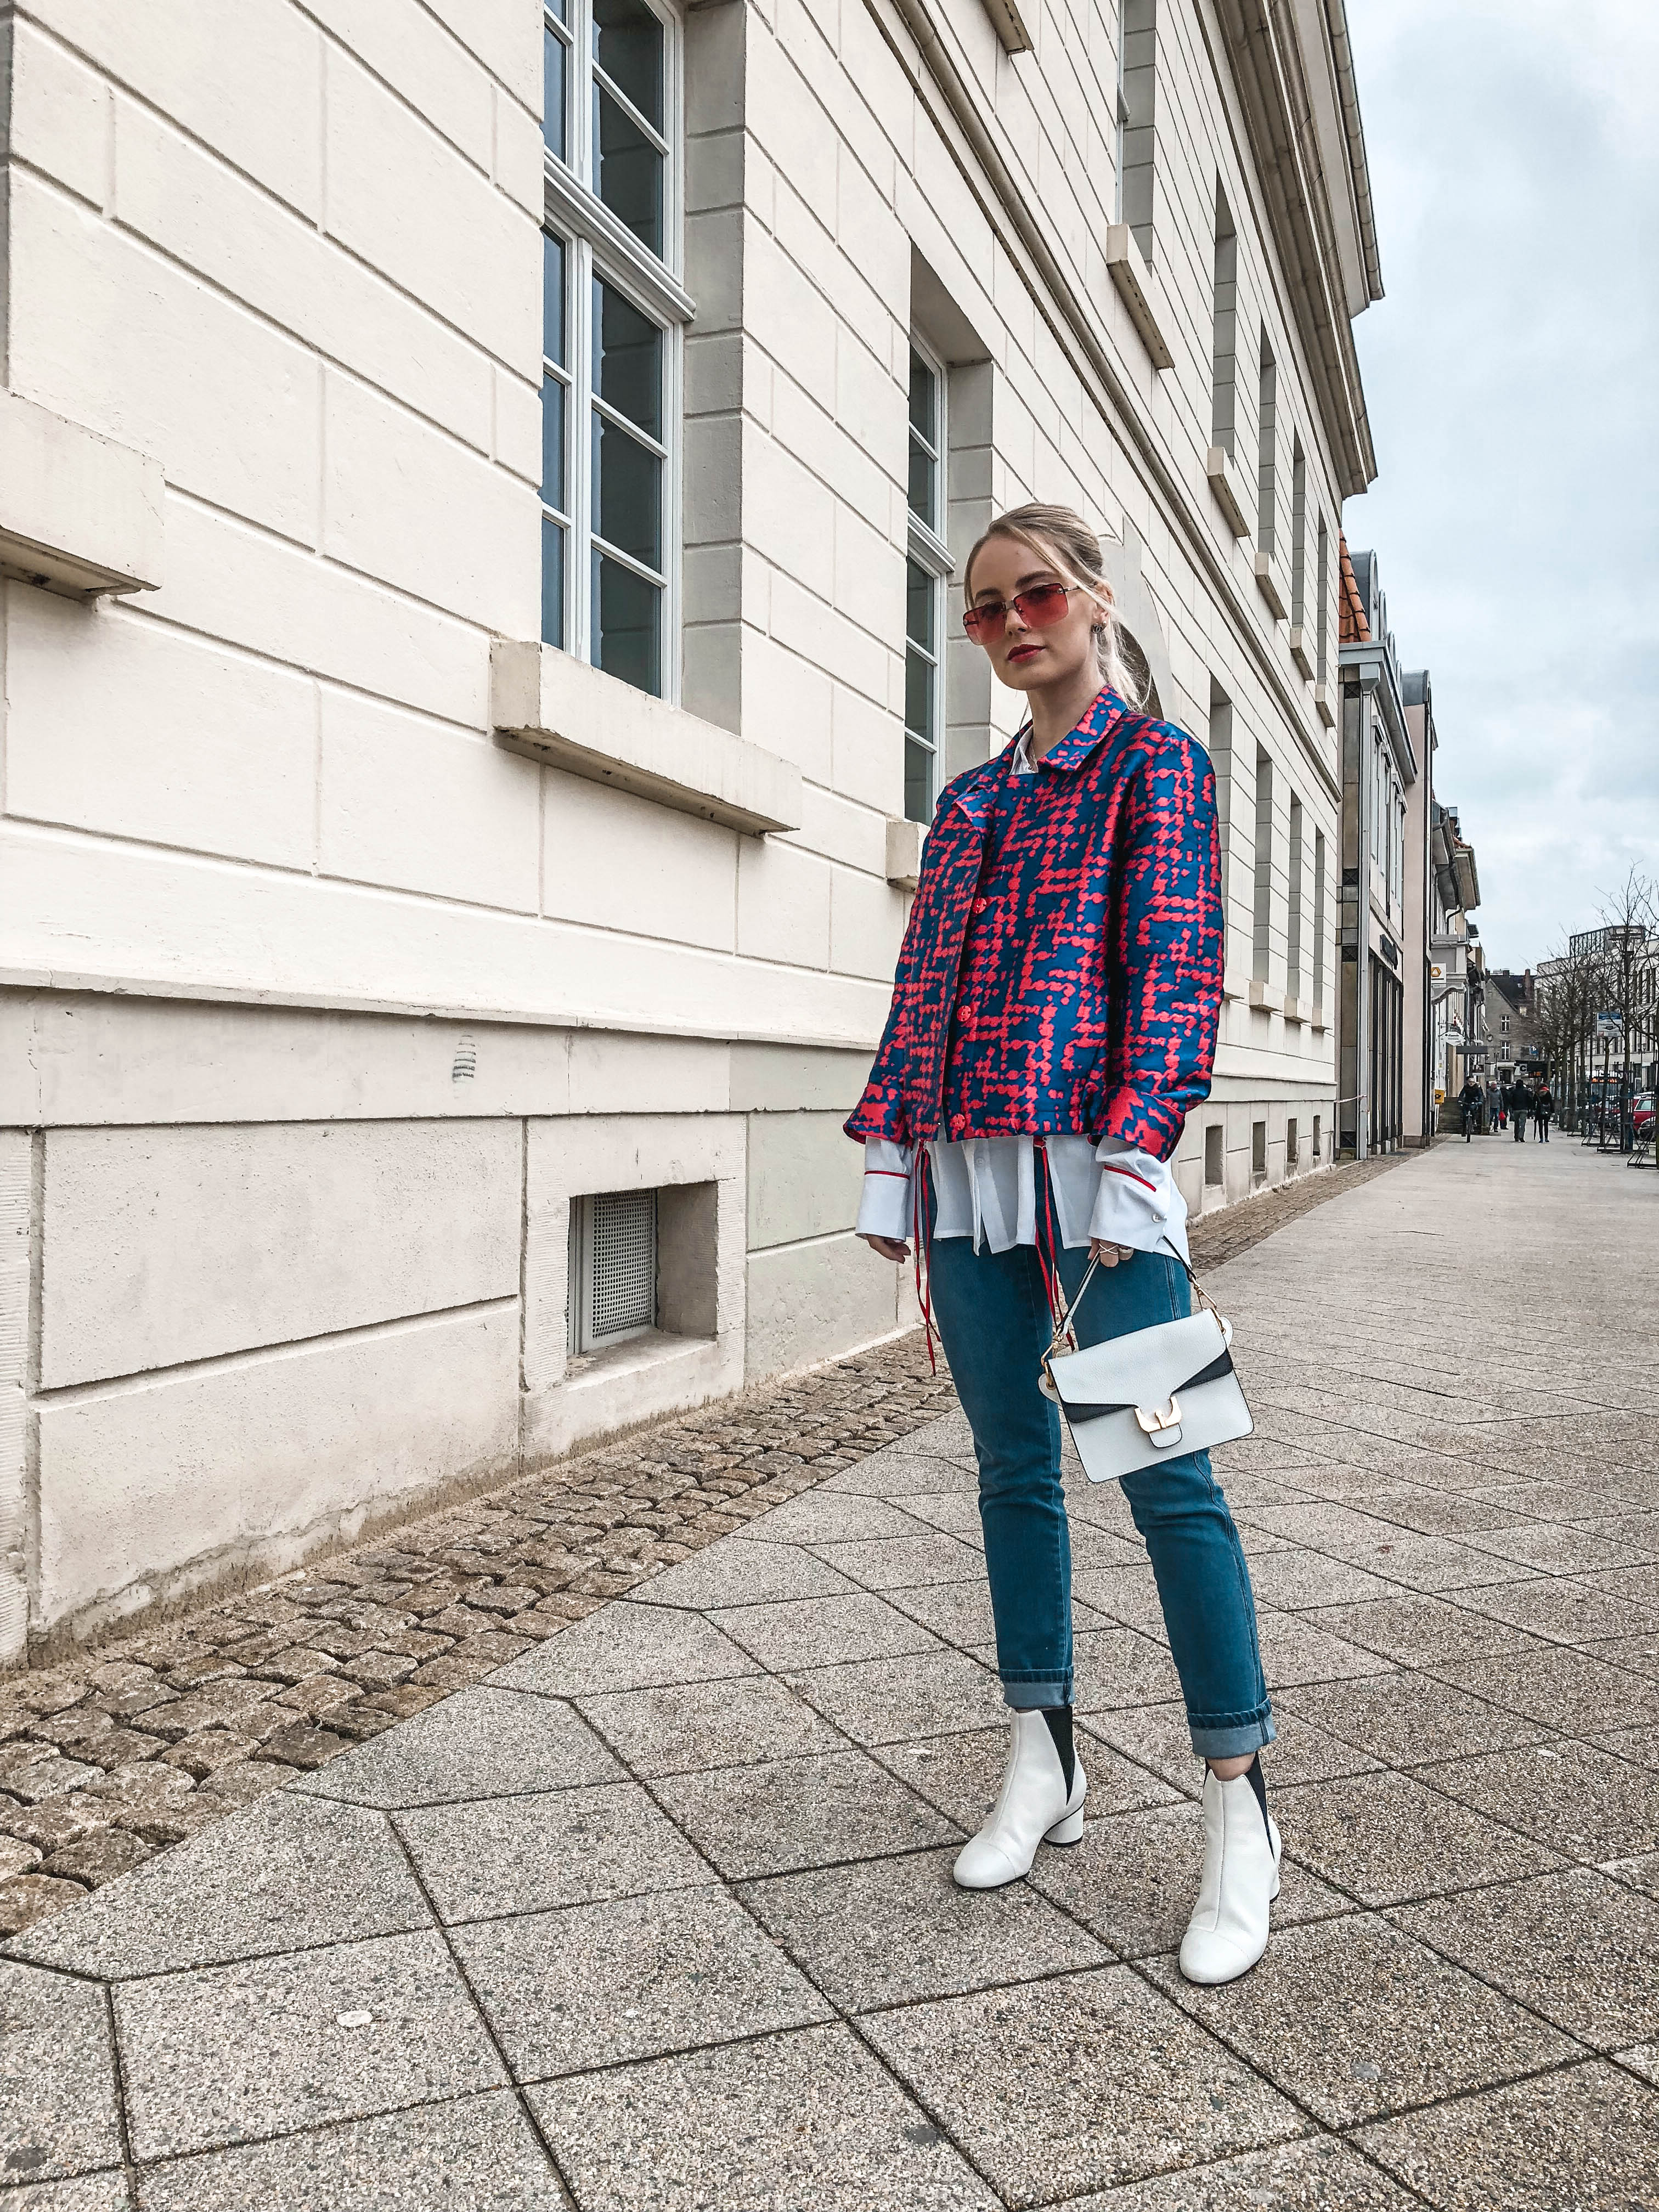 Berlin Fashion Week Teil 1 - KIM ENGEL